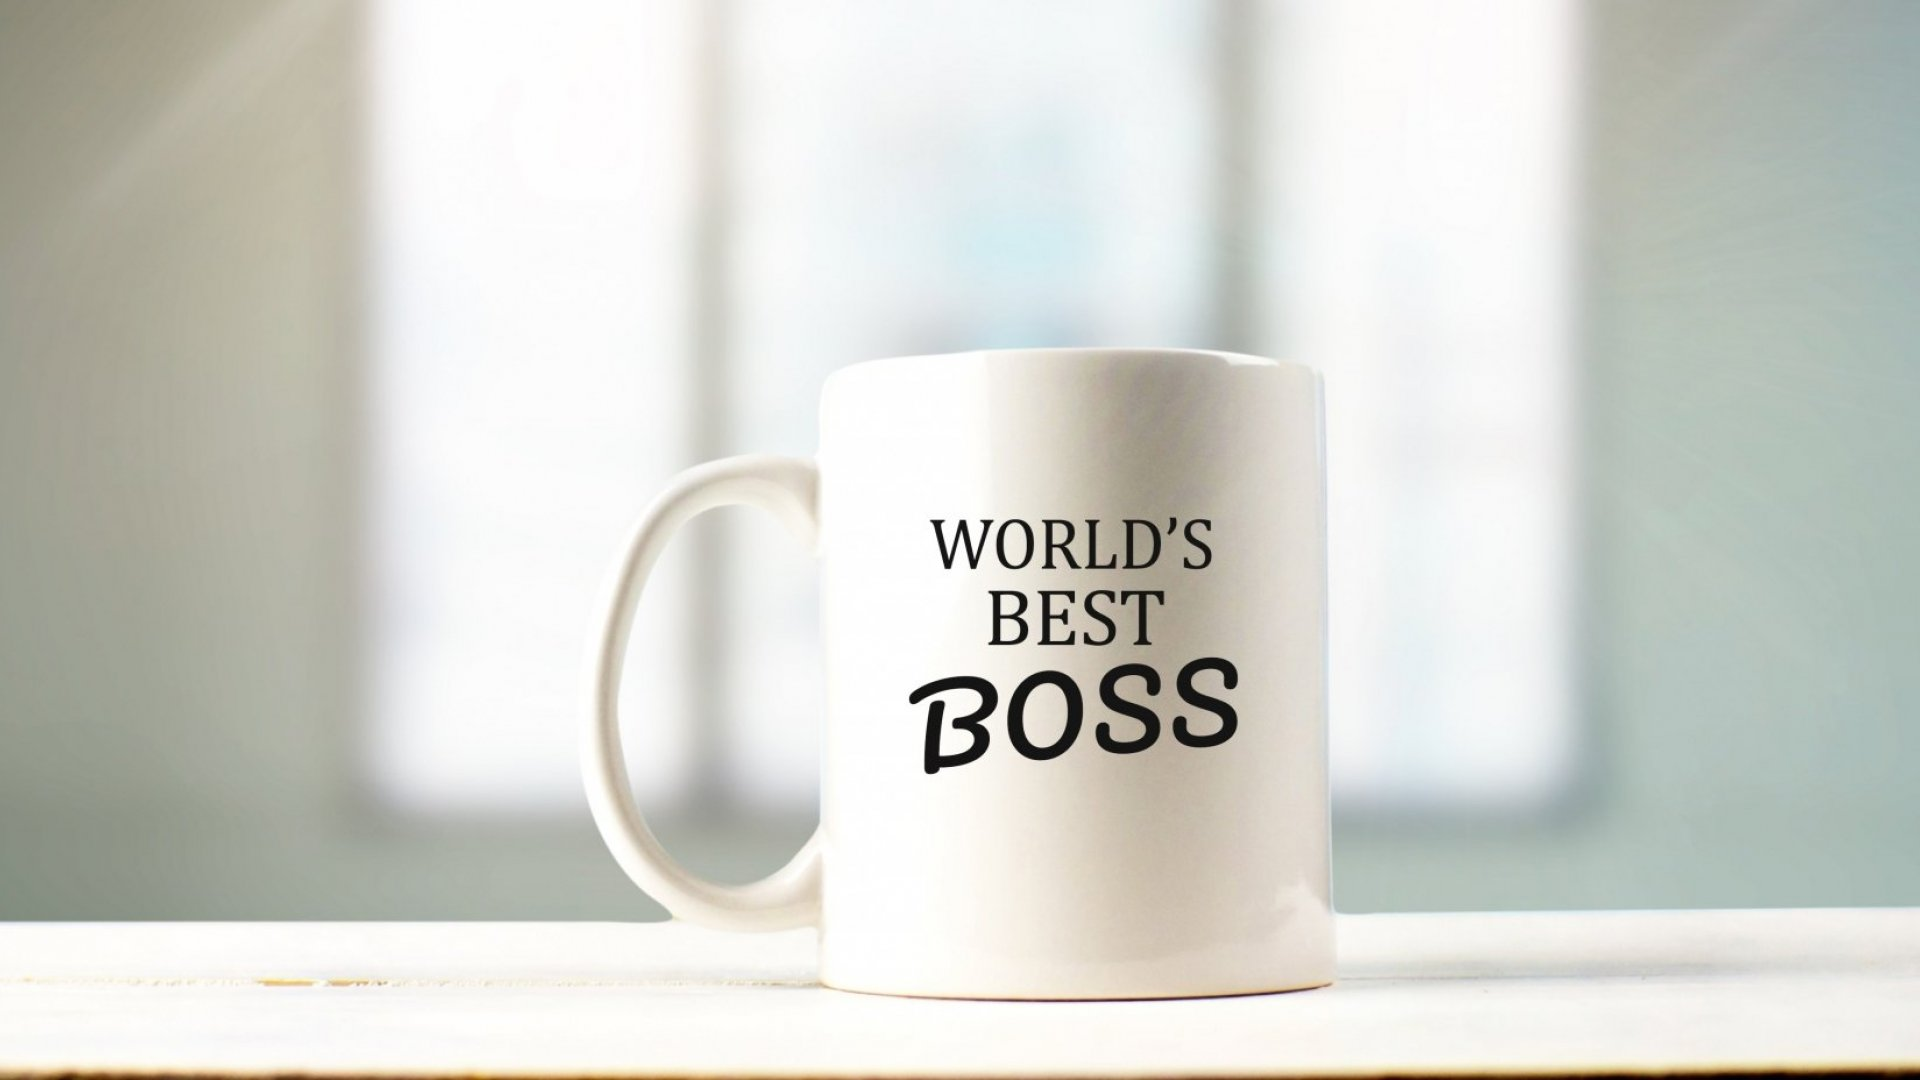 Which Are You: Boss, Manager, or Leader?